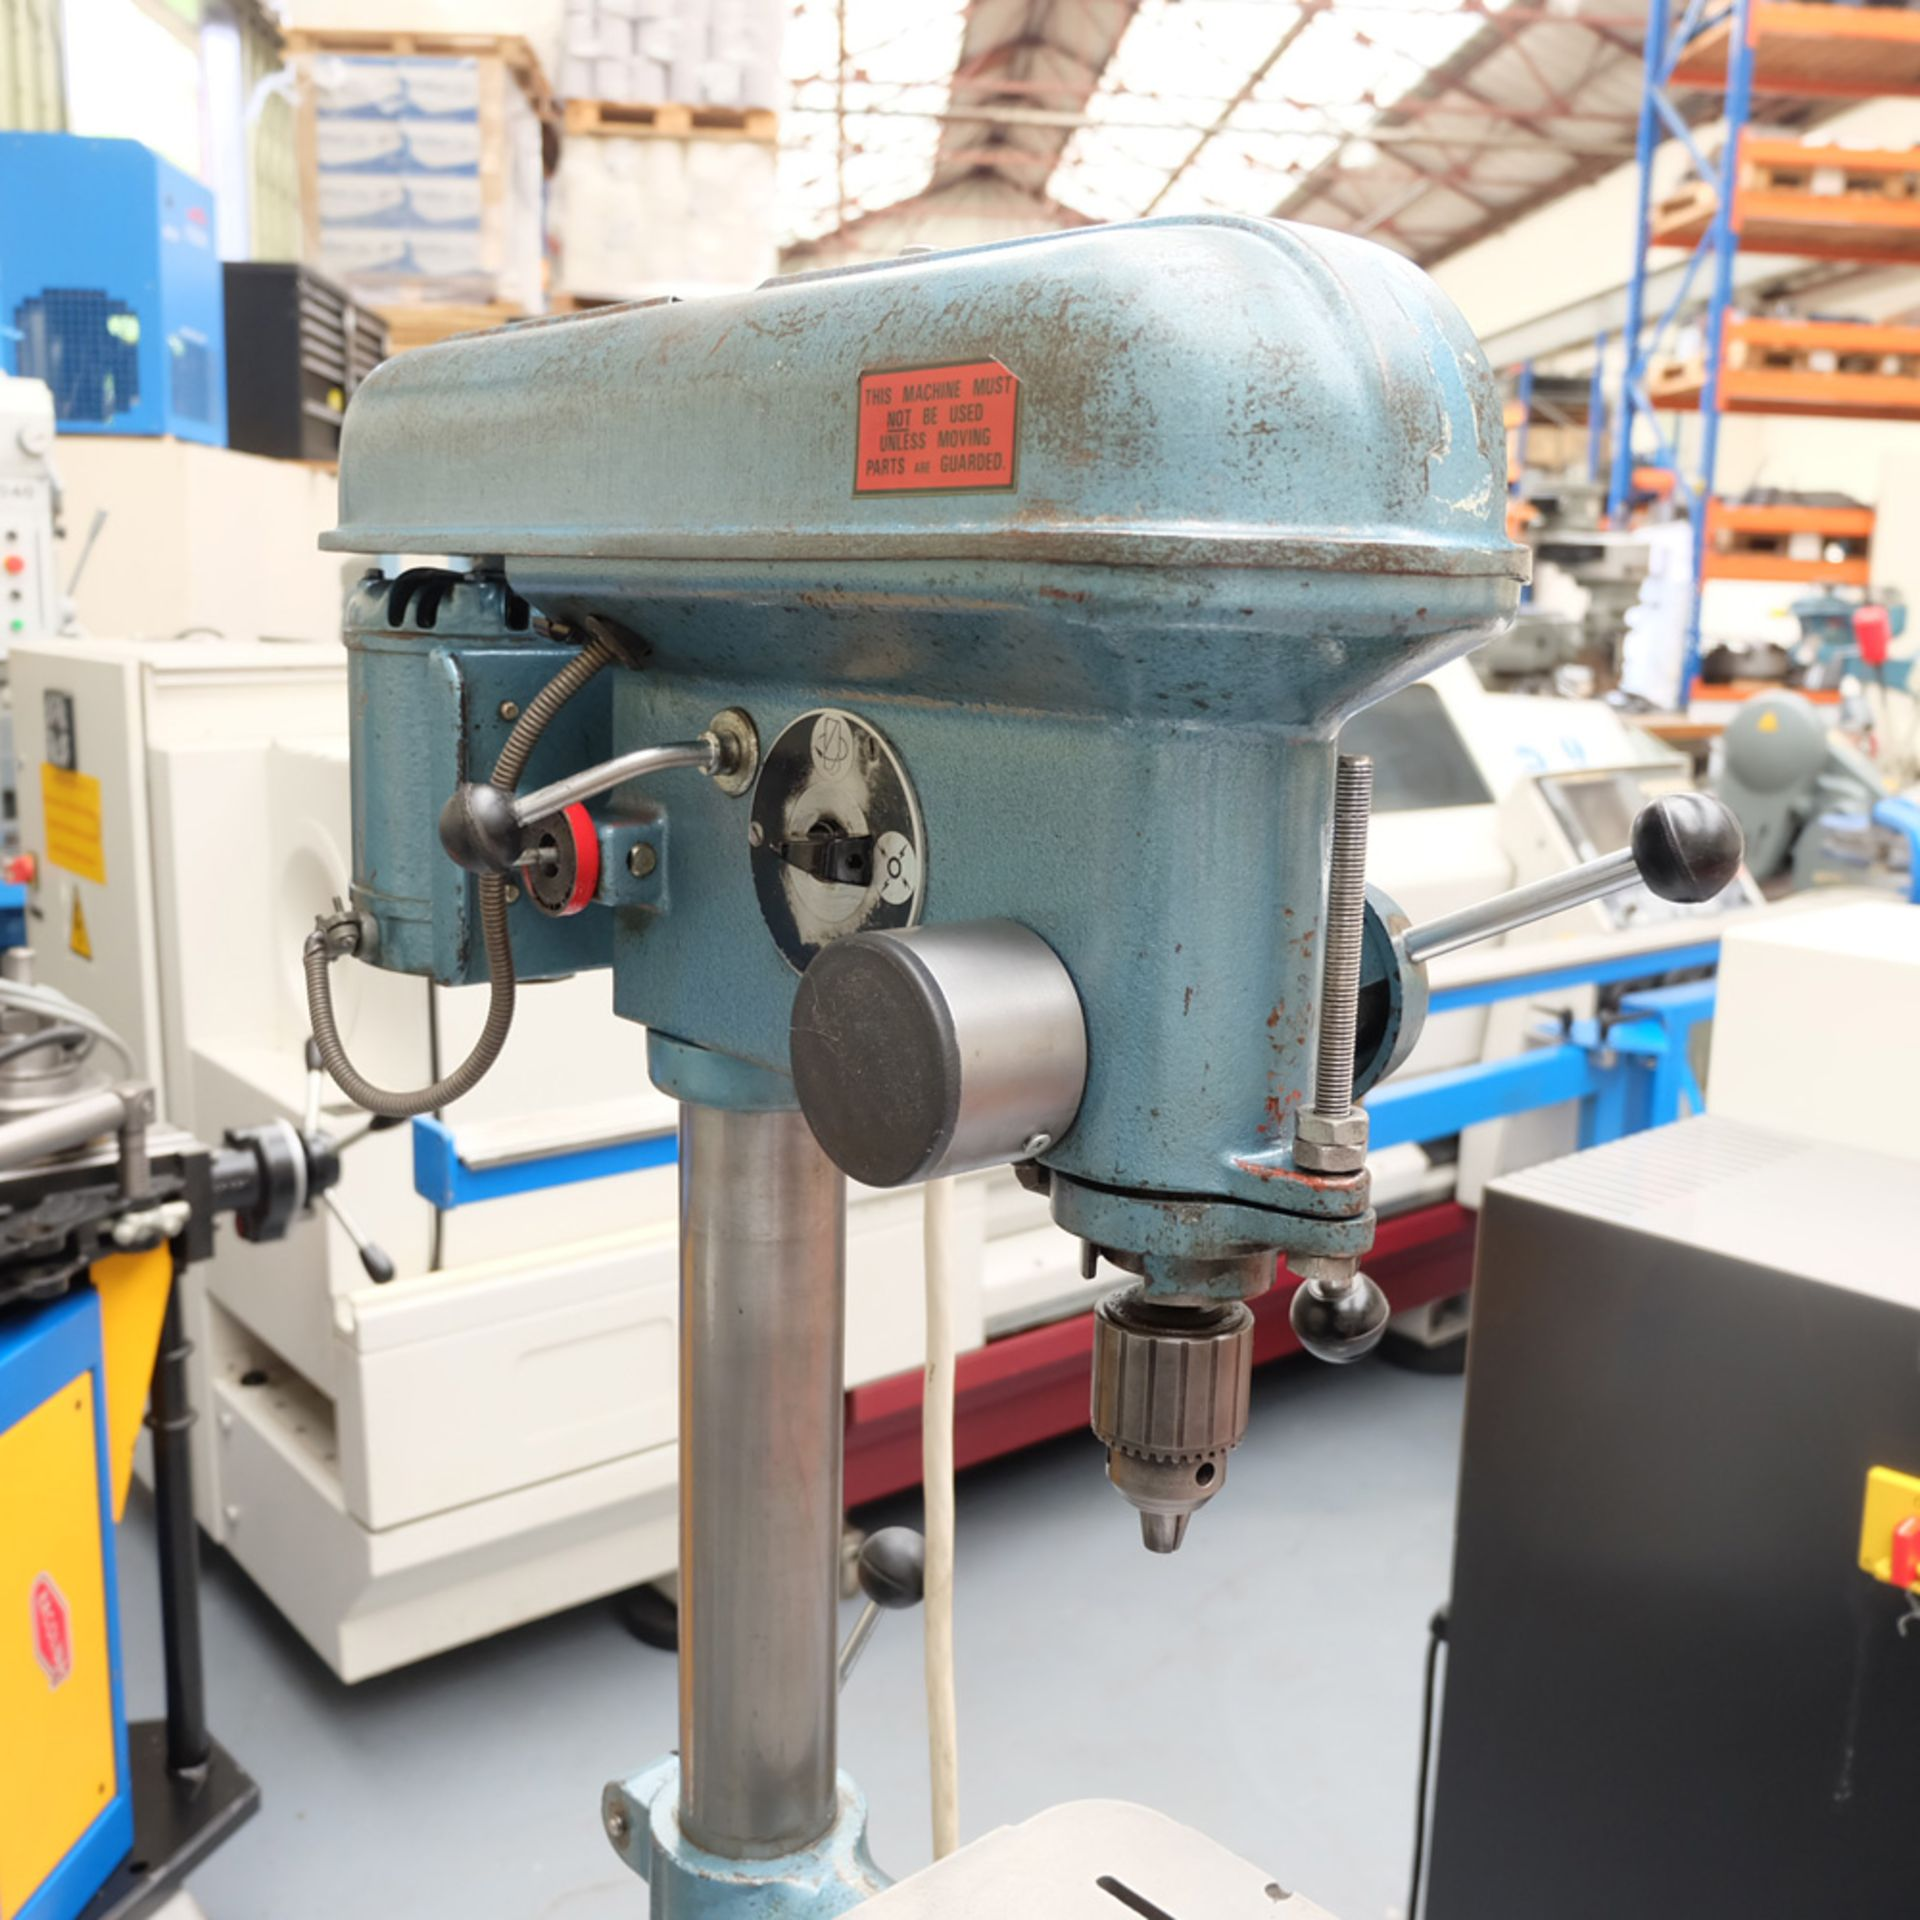 "Meddings LF1 Pillar Drill. Capacity 1/2"". 5 Speeds 500 - 4000rpm. - Image 3 of 6"